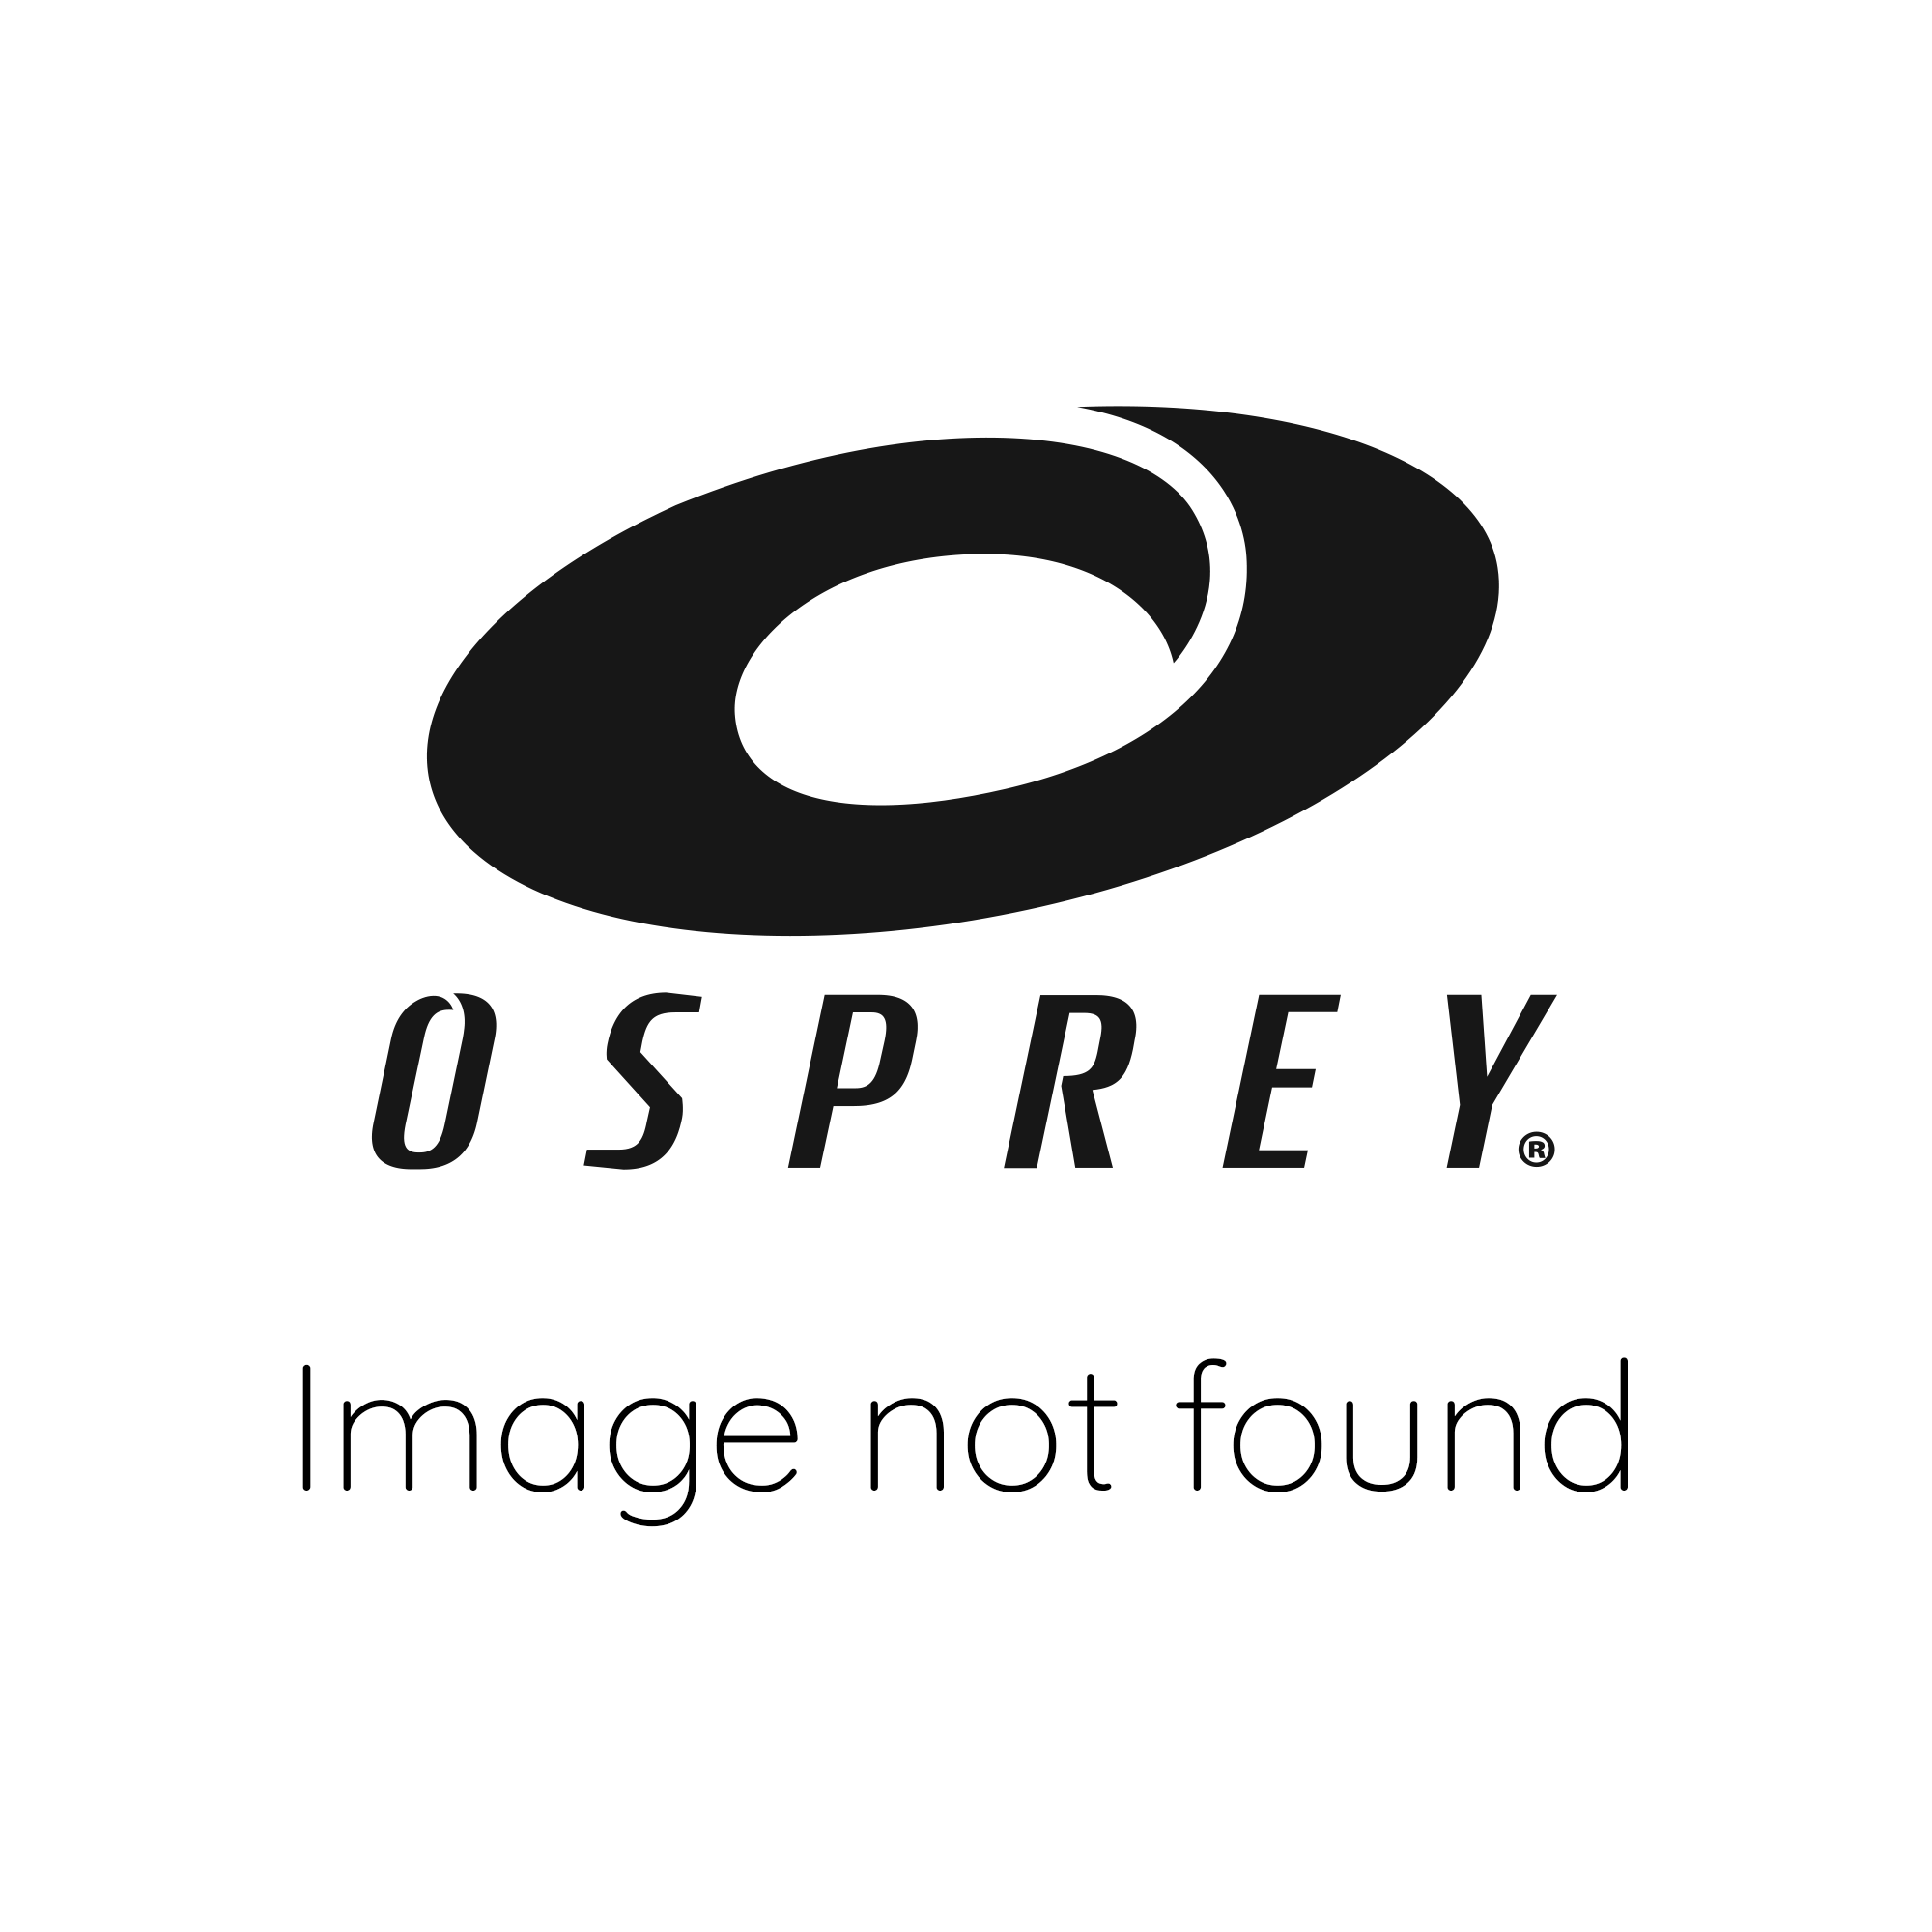 Osprey 5ft 8in Little Wood Foamie Surfboard